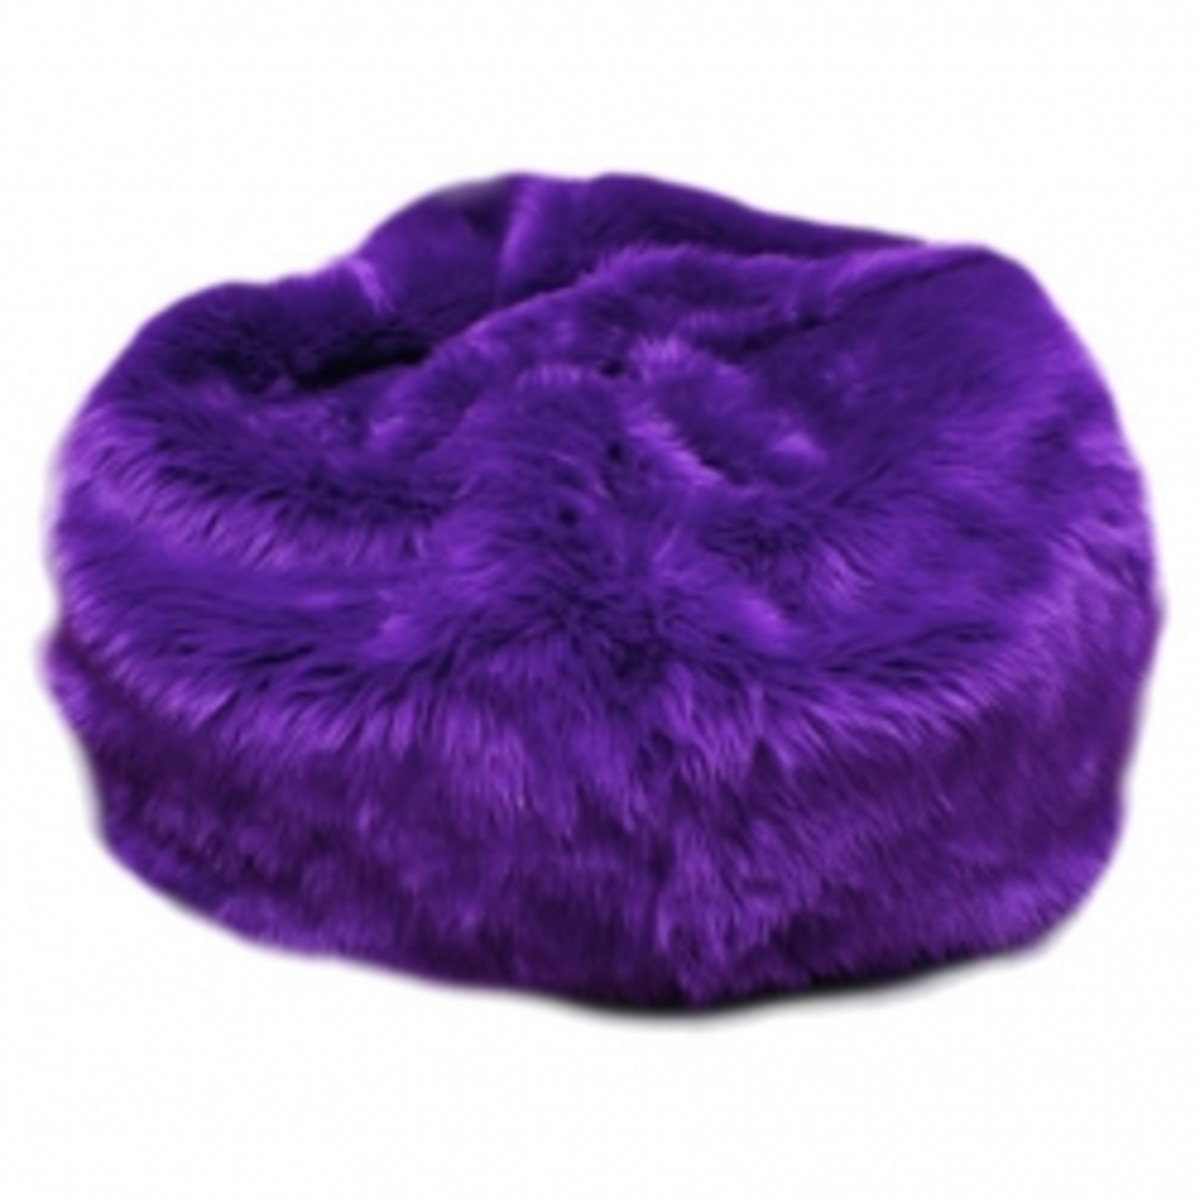 Furry Bean Bag Chairs and Fuzzy Chairs